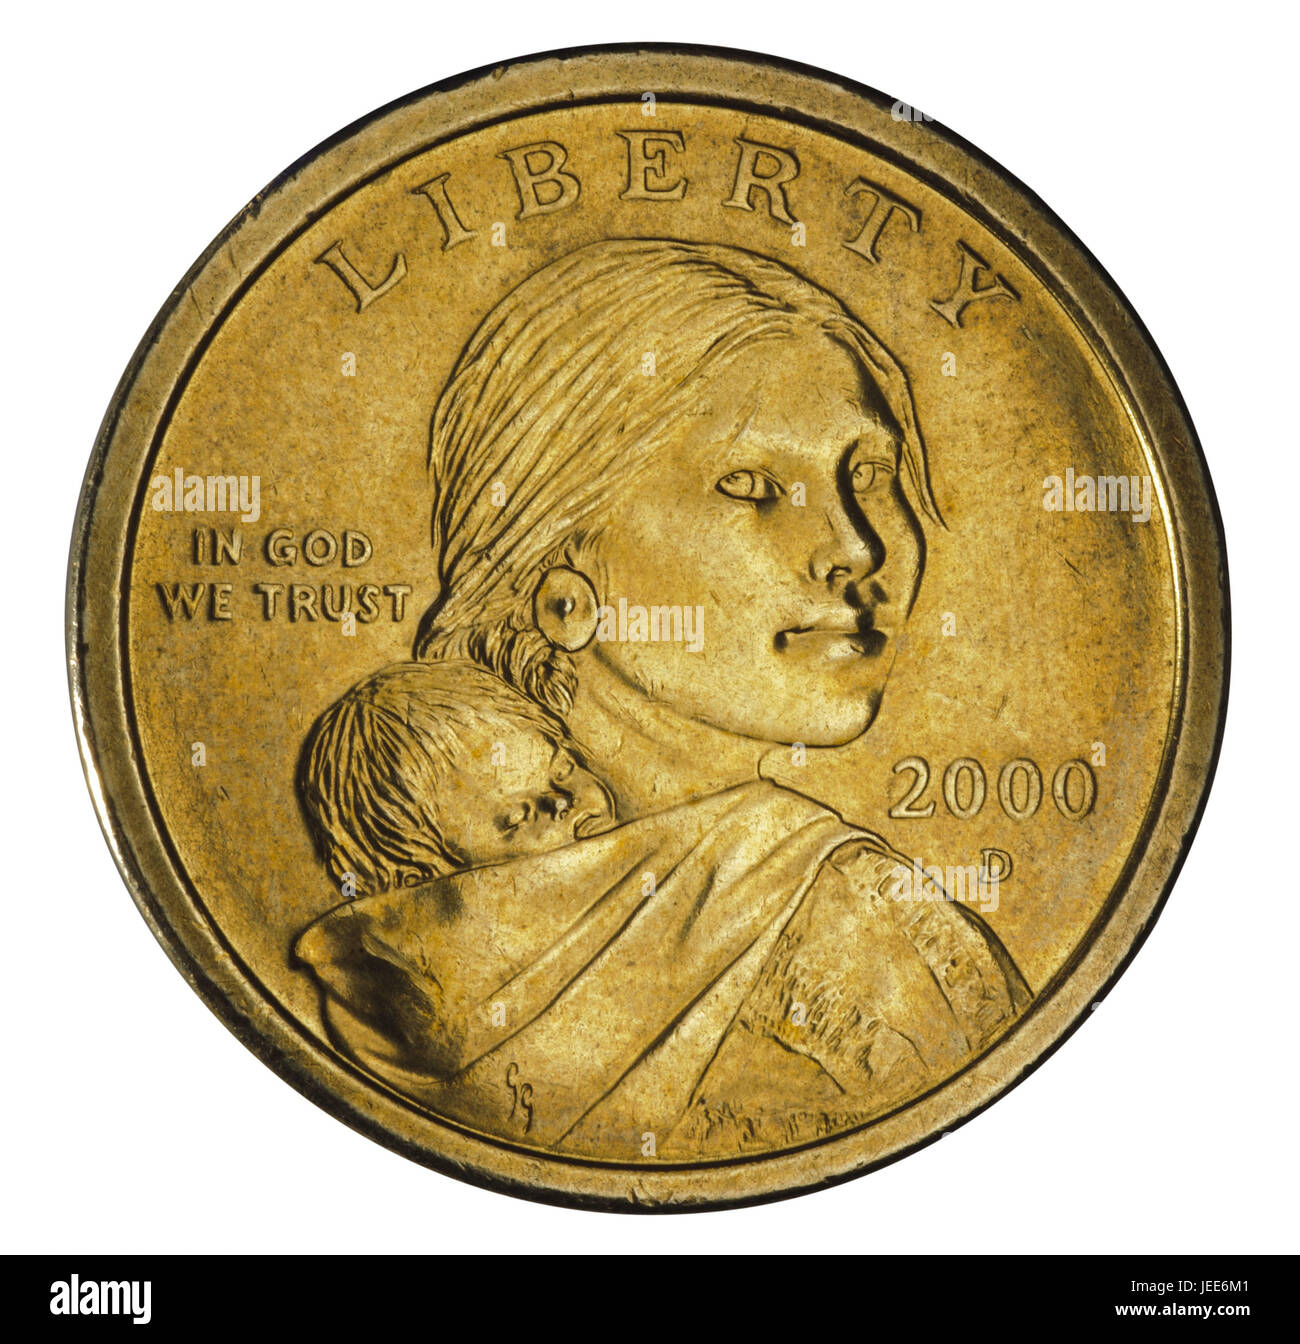 Der Us Dollar 1 Dollar Münze Stockfoto Bild 146600721 Alamy